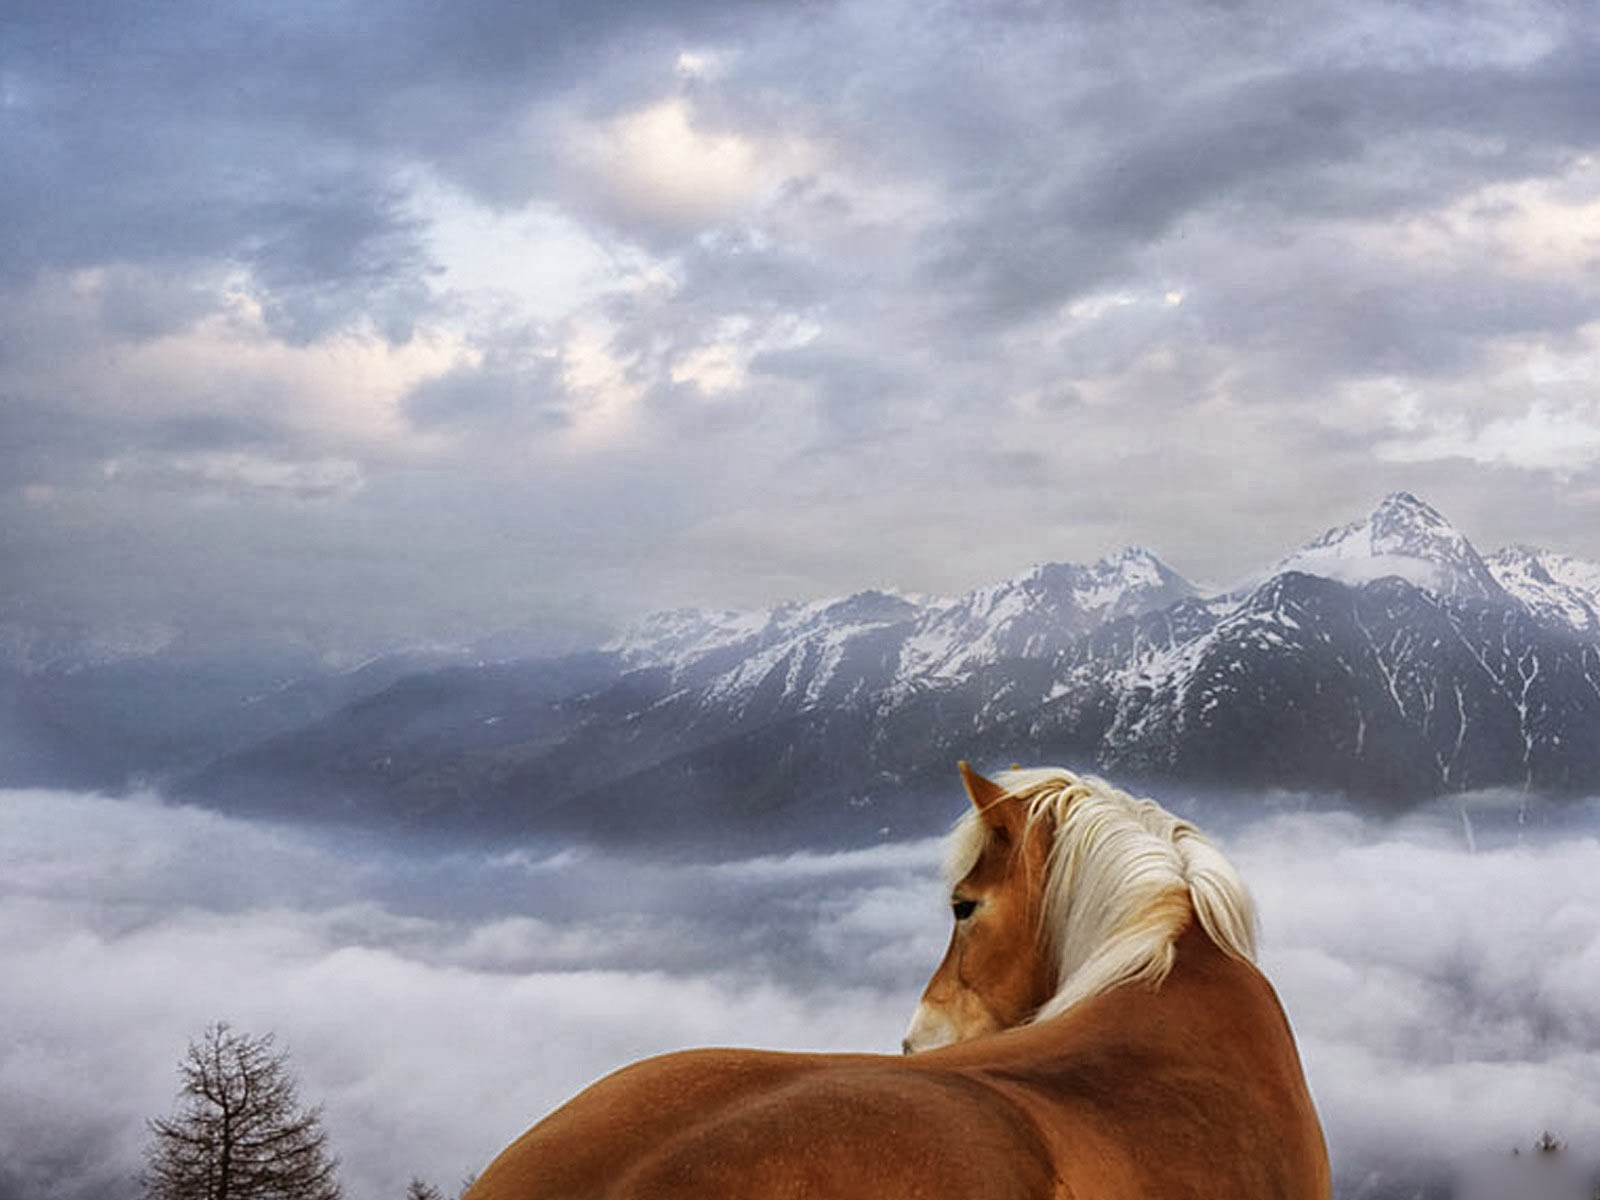 HORSES HD WALLPAPERS | FREE HD WALLPAPERS